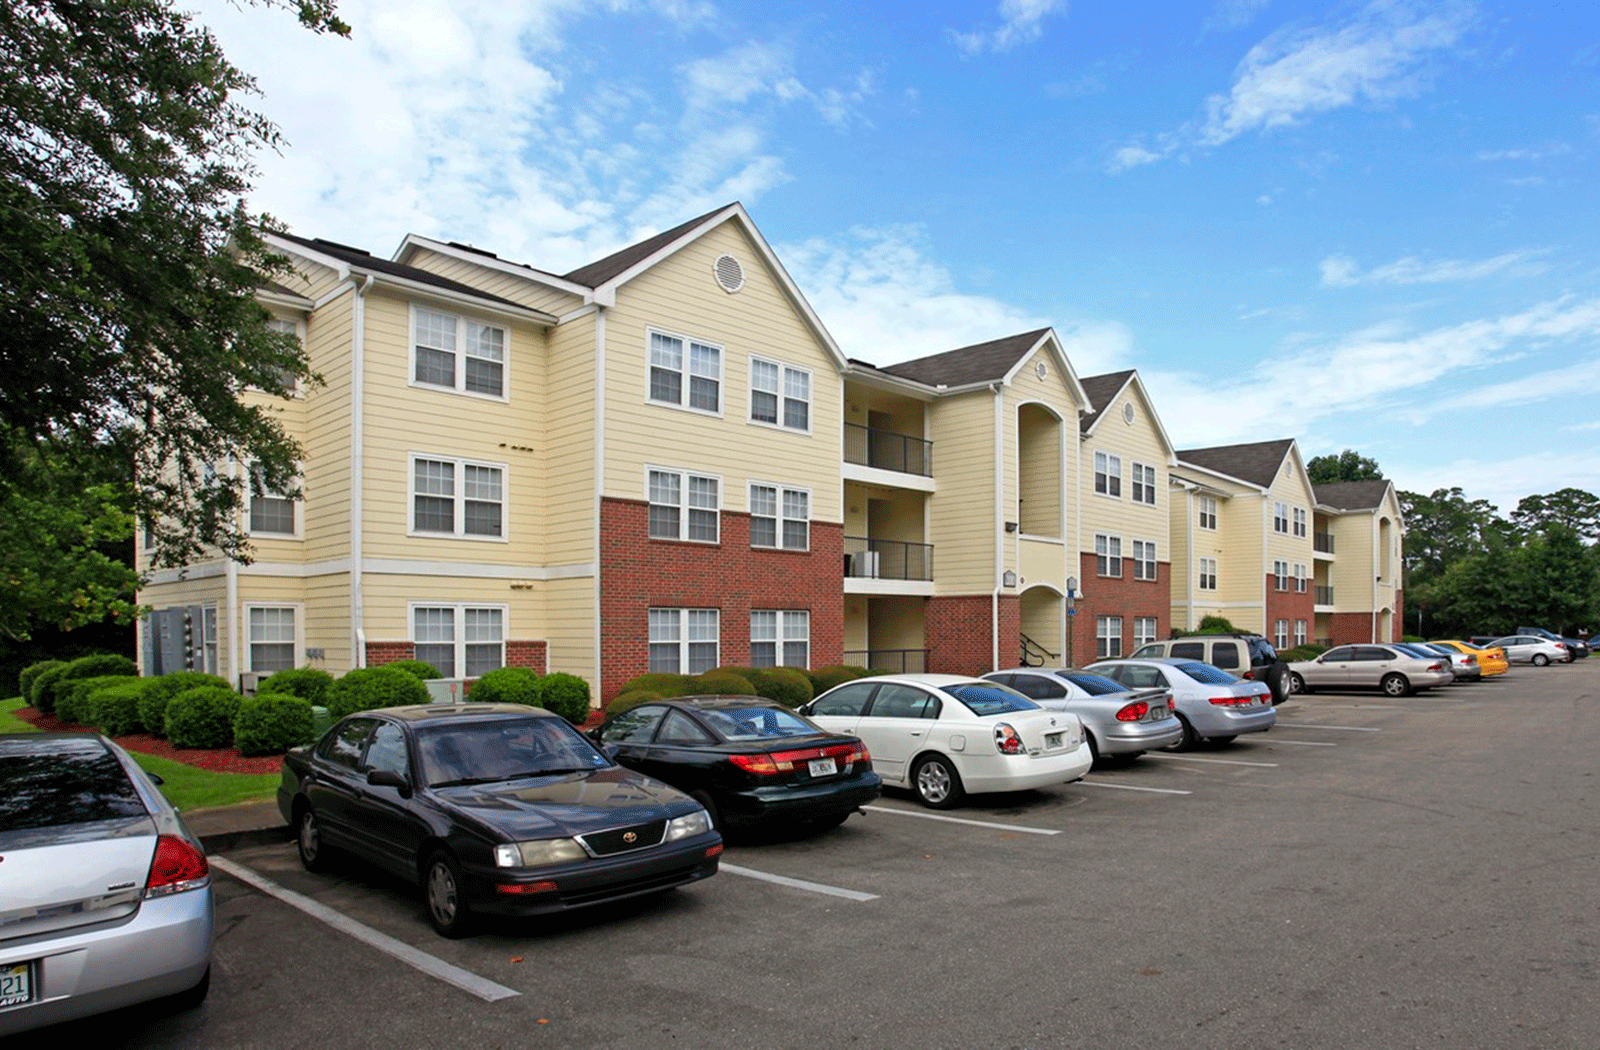 ,Apartments-In-Tallahassee-Fl  ,apartments in tallahassee fl  ,apartments in tallahassee fl near fsu  ,apartments in tallahassee fl near famu  ,apartments in tallahassee fl not for students  ,apartments in tallahassee fl near tcc  ,apartments in tallahassee fl near thomasville road  ,apartments in tallahassee fl under 500  ,apartments in tallahassee fl near tmh  ,apartments in tallahassee fl on apalachee parkway  ,apartments in tallahassee fl on mission road  ,apartments in tallahassee fl for college students  ,apartments in tallahassee fl craigslist  ,apartments in tallahassee fl utilities included  ,apartments in tallahassee fl on old bainbridge  ,apartments in tallahassee fl on capital circle  ,apartments in tallahassee fl 32308  ,apartments in tallahassee fl cheap  ,apartments in tallahassee fl southwood  ,apartments in tallahassee fl killearn  ,car rentals in tallahassee fl airport  ,affordable apartments in tallahassee fl  ,alpine apartments in tallahassee fl  ,arbor apartments in tallahassee fl  ,rental cars tallahassee florida airport  ,arbor view apartments in tallahassee fl  ,avenue 29 apartments in tallahassee fl  ,arbor crossing apartments in tallahassee fl  ,best apartments in tallahassee fl  ,briarwood apartments in tallahassee fl  ,blairstone apartments in tallahassee fl  ,income based apartments in tallahassee fl  ,1 bedroom apartments in tallahassee fl  ,3 bedroom apartments in tallahassee fl  ,2 bedroom apartments in tallahassee fl  ,brand new apartments in tallahassee fl  ,best rated apartments in tallahassee fl  ,palm beach apartments in tallahassee fl  ,apartments in tallahassee fl no credit check  ,cameron apartments in tallahassee fl  ,colonnade apartments in tallahassee fl  ,corporate apartments in tallahassee fl  ,castle apartments in tallahassee fl  ,apartment complexes in tallahassee fl  ,apartment communities in tallahassee fl  ,second chance apartments in tallahassee fl  ,non college apartments in tallahassee fl  ,cheap studio apartments